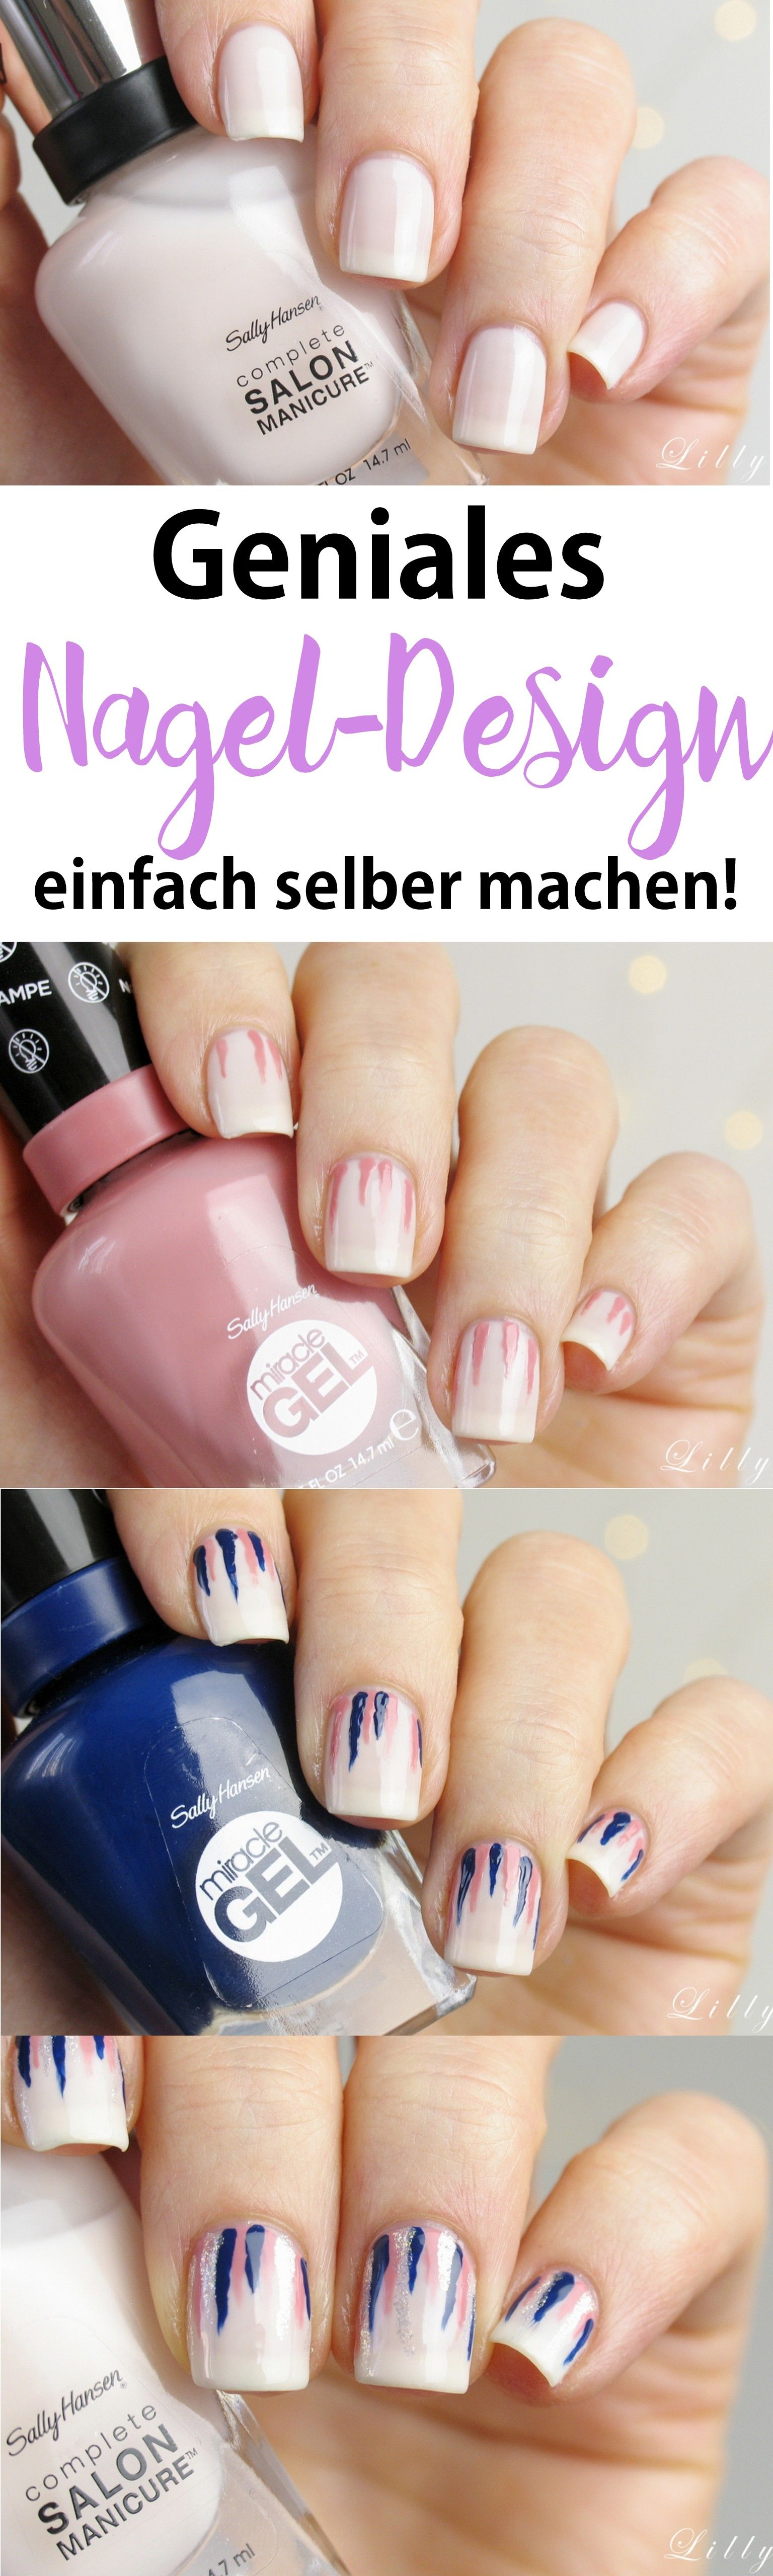 WATERFALL NAILS: Einfaches Nageldesign Sally Hansen | Nageldesign ...